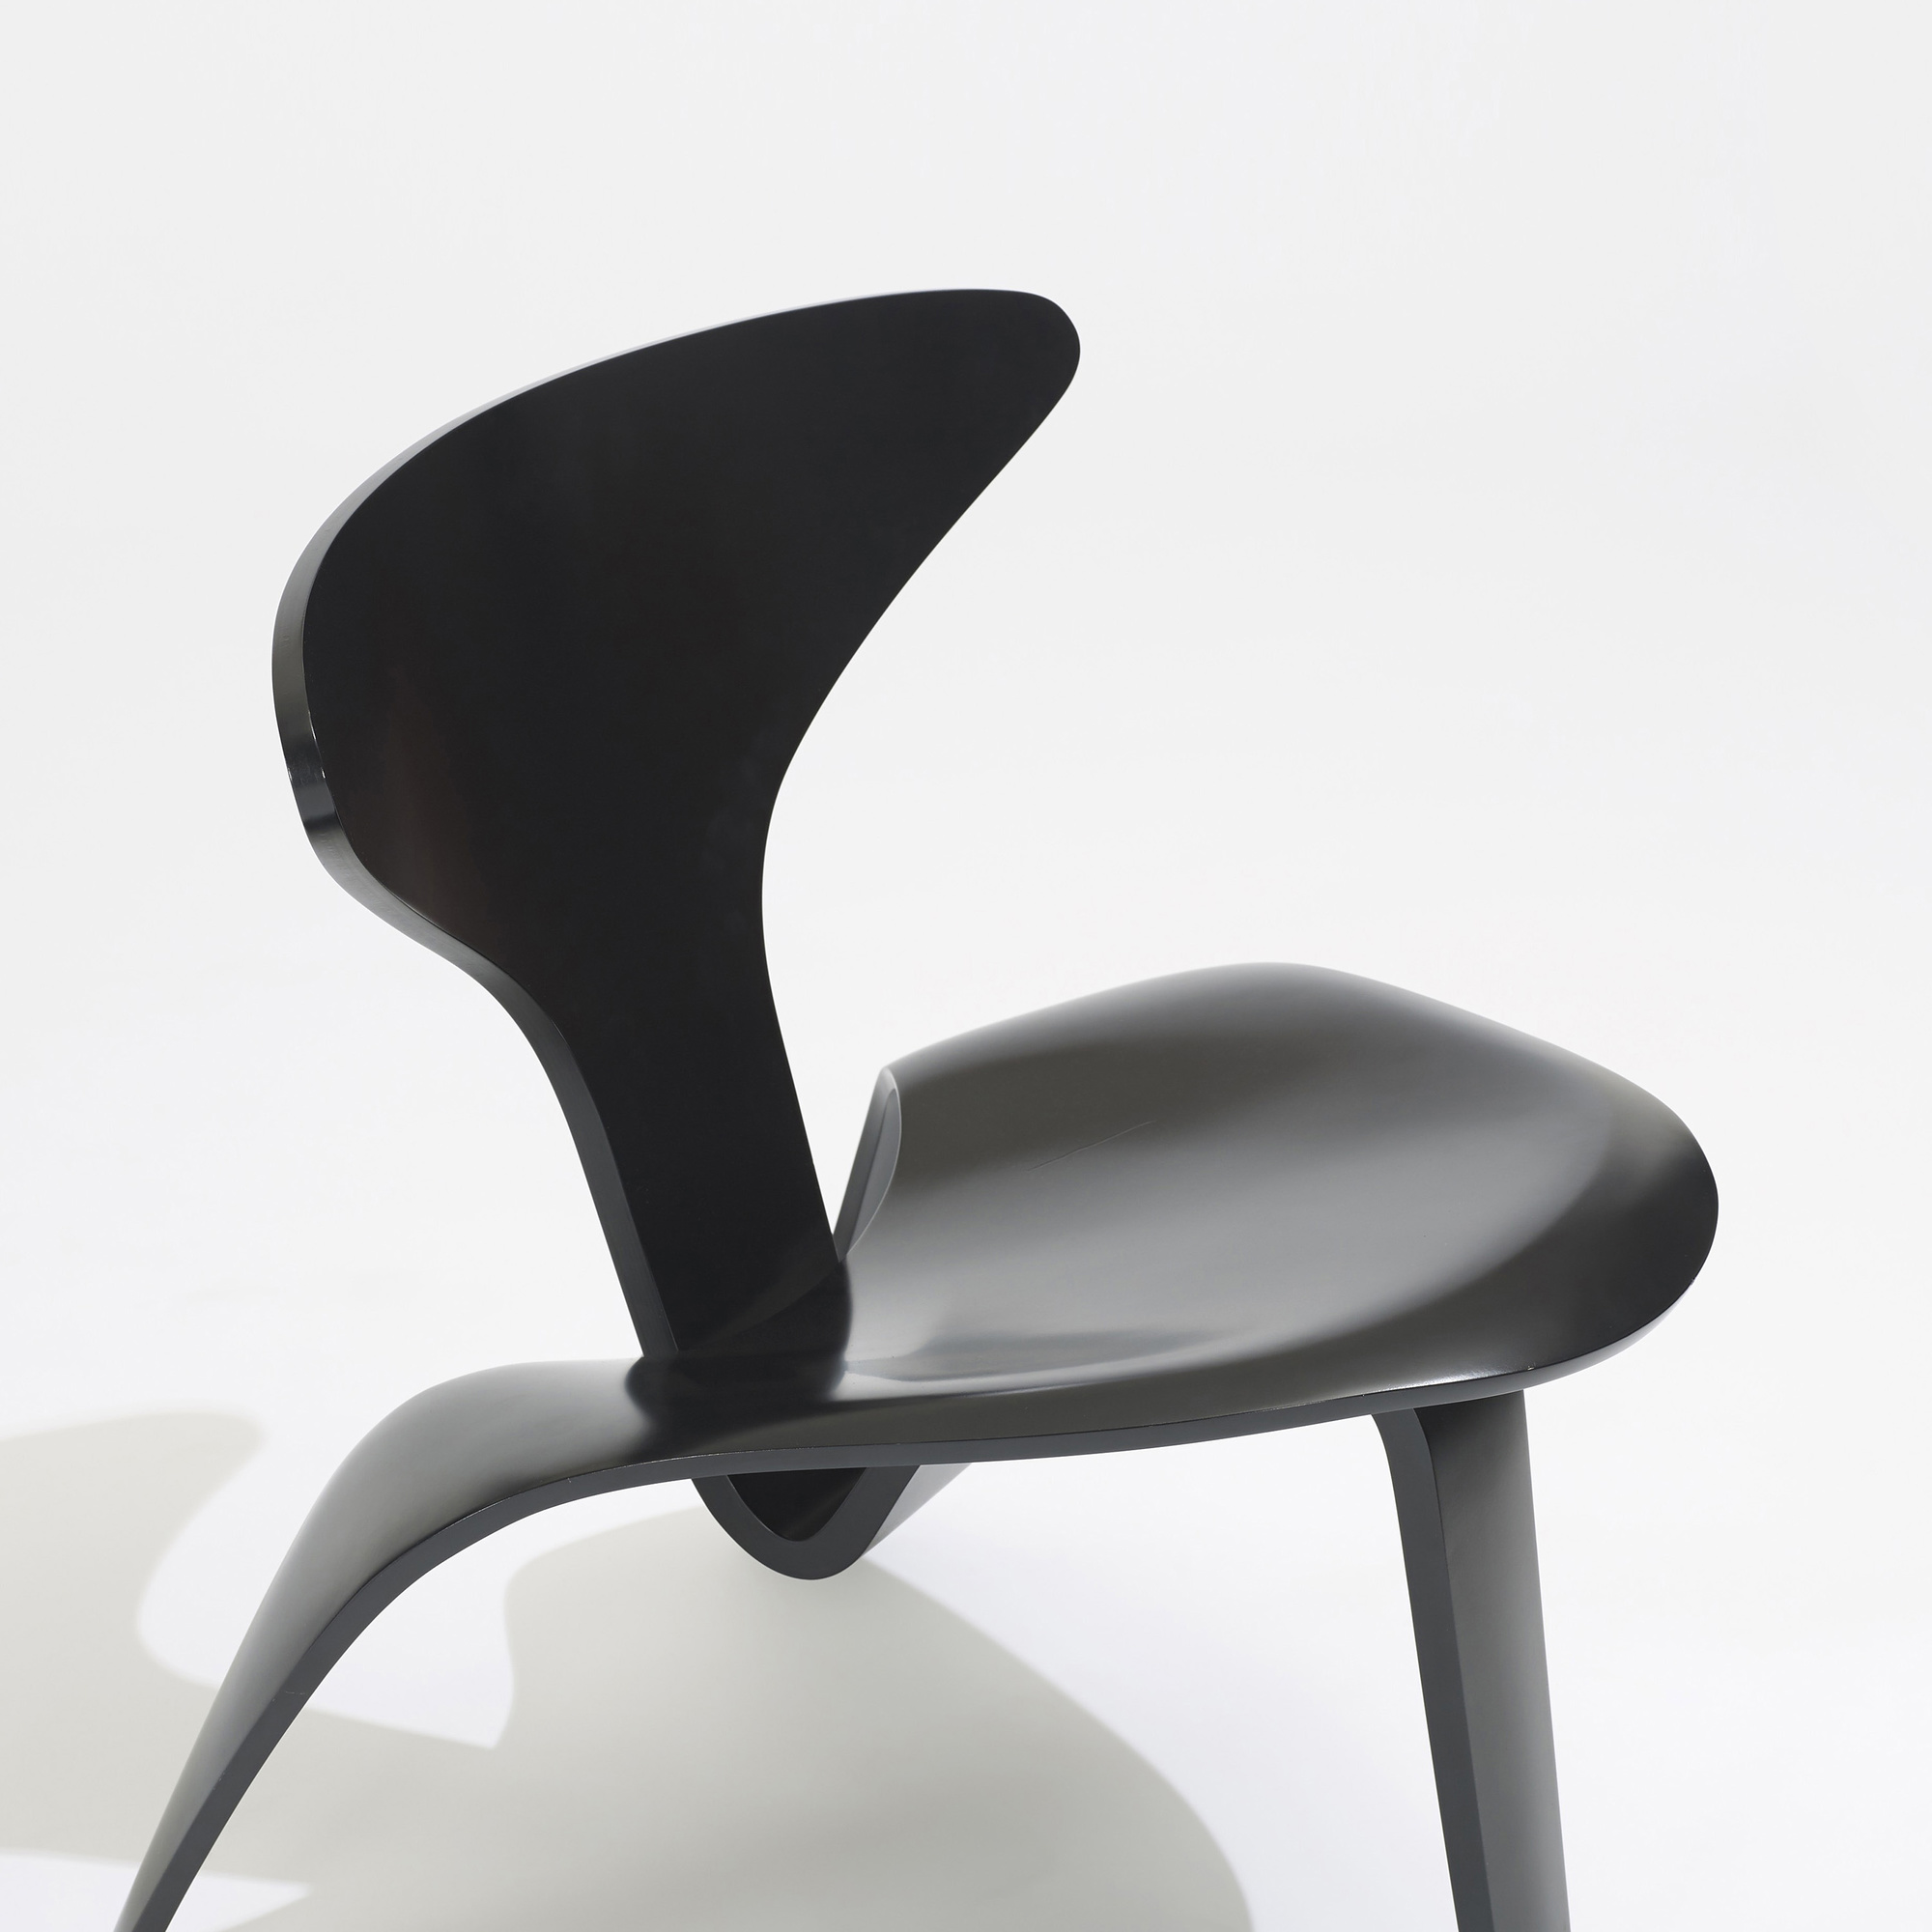 ... 346: Poul Kjaerholm / PK 0 Lounge Chair (4 Of 5)